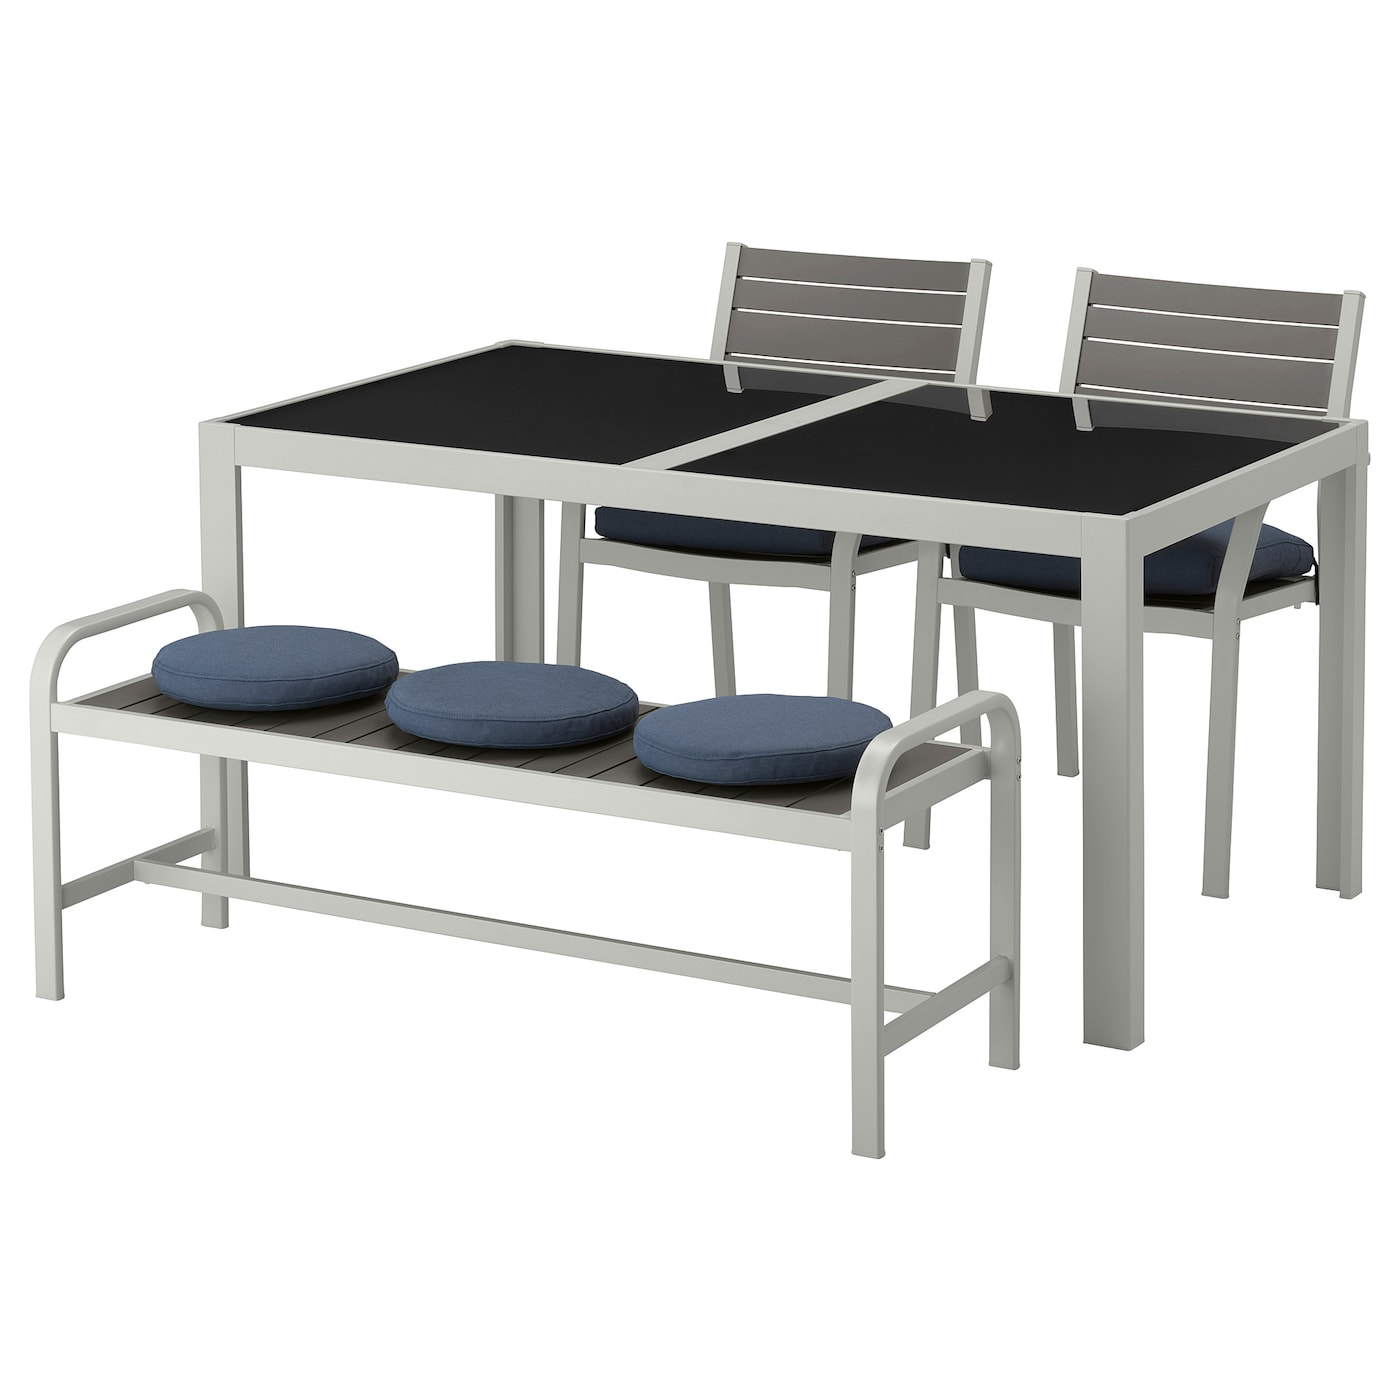 sj lland table 2 chaises banc ext verre fr s n duvholmen bleu 156 x 90 cm ikea. Black Bedroom Furniture Sets. Home Design Ideas